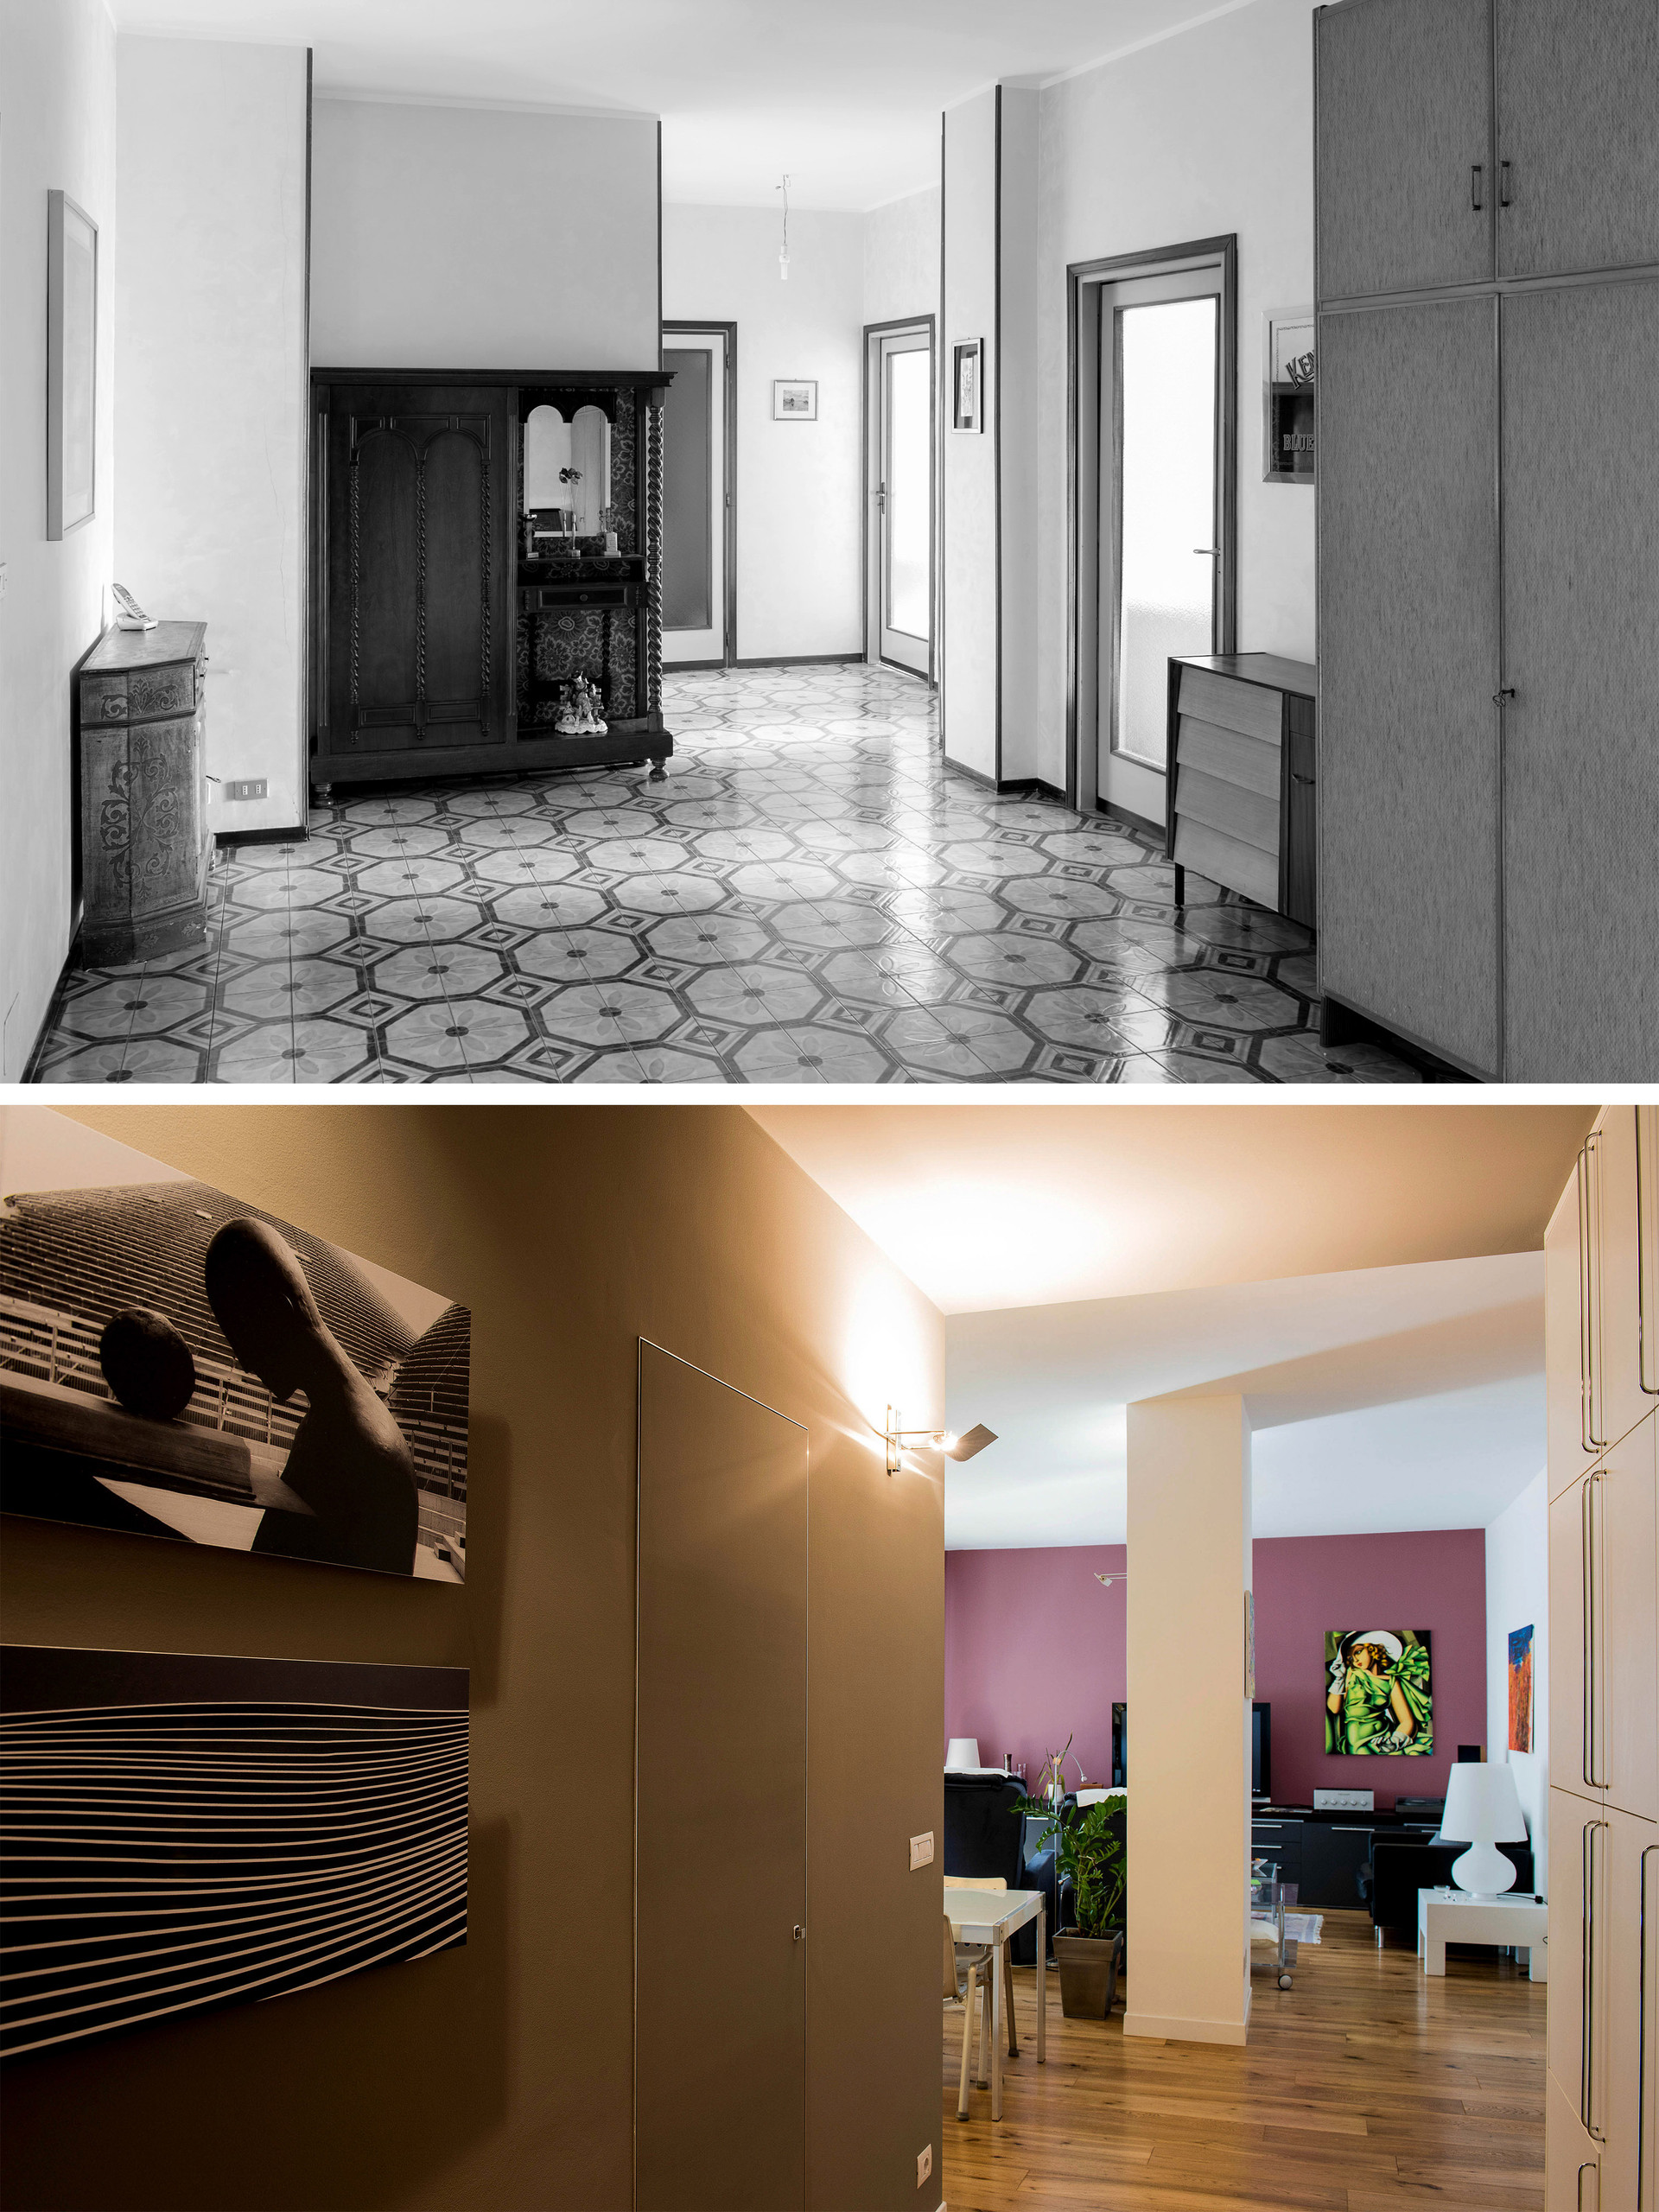 Prima-Dopo I Before-After